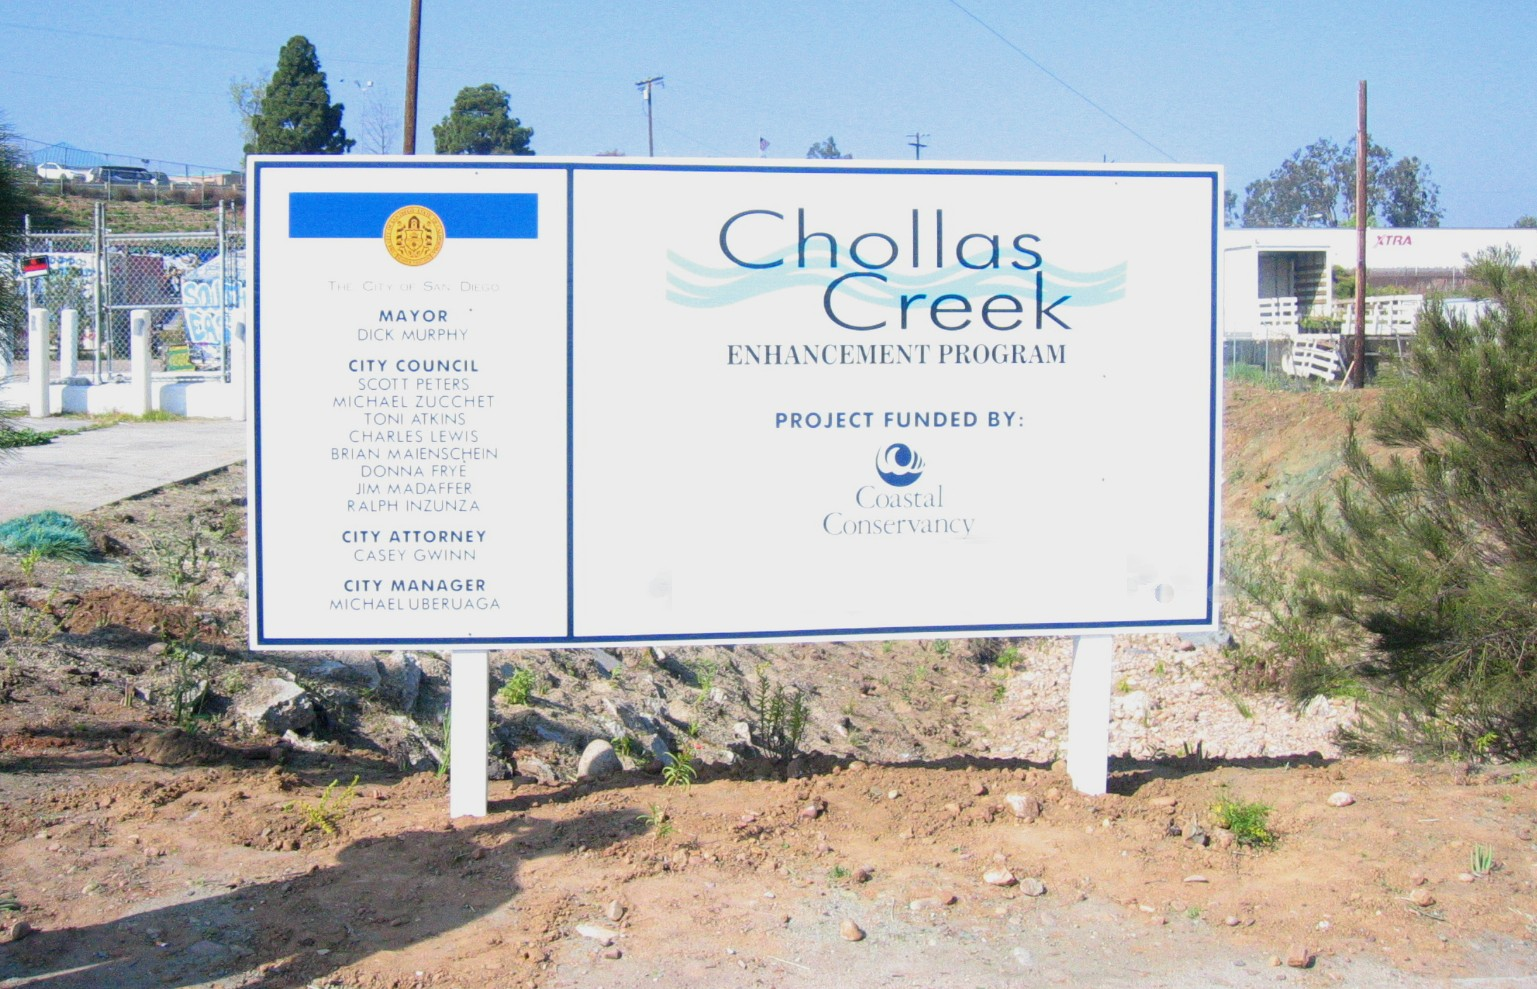 Chollos Creek construction sign